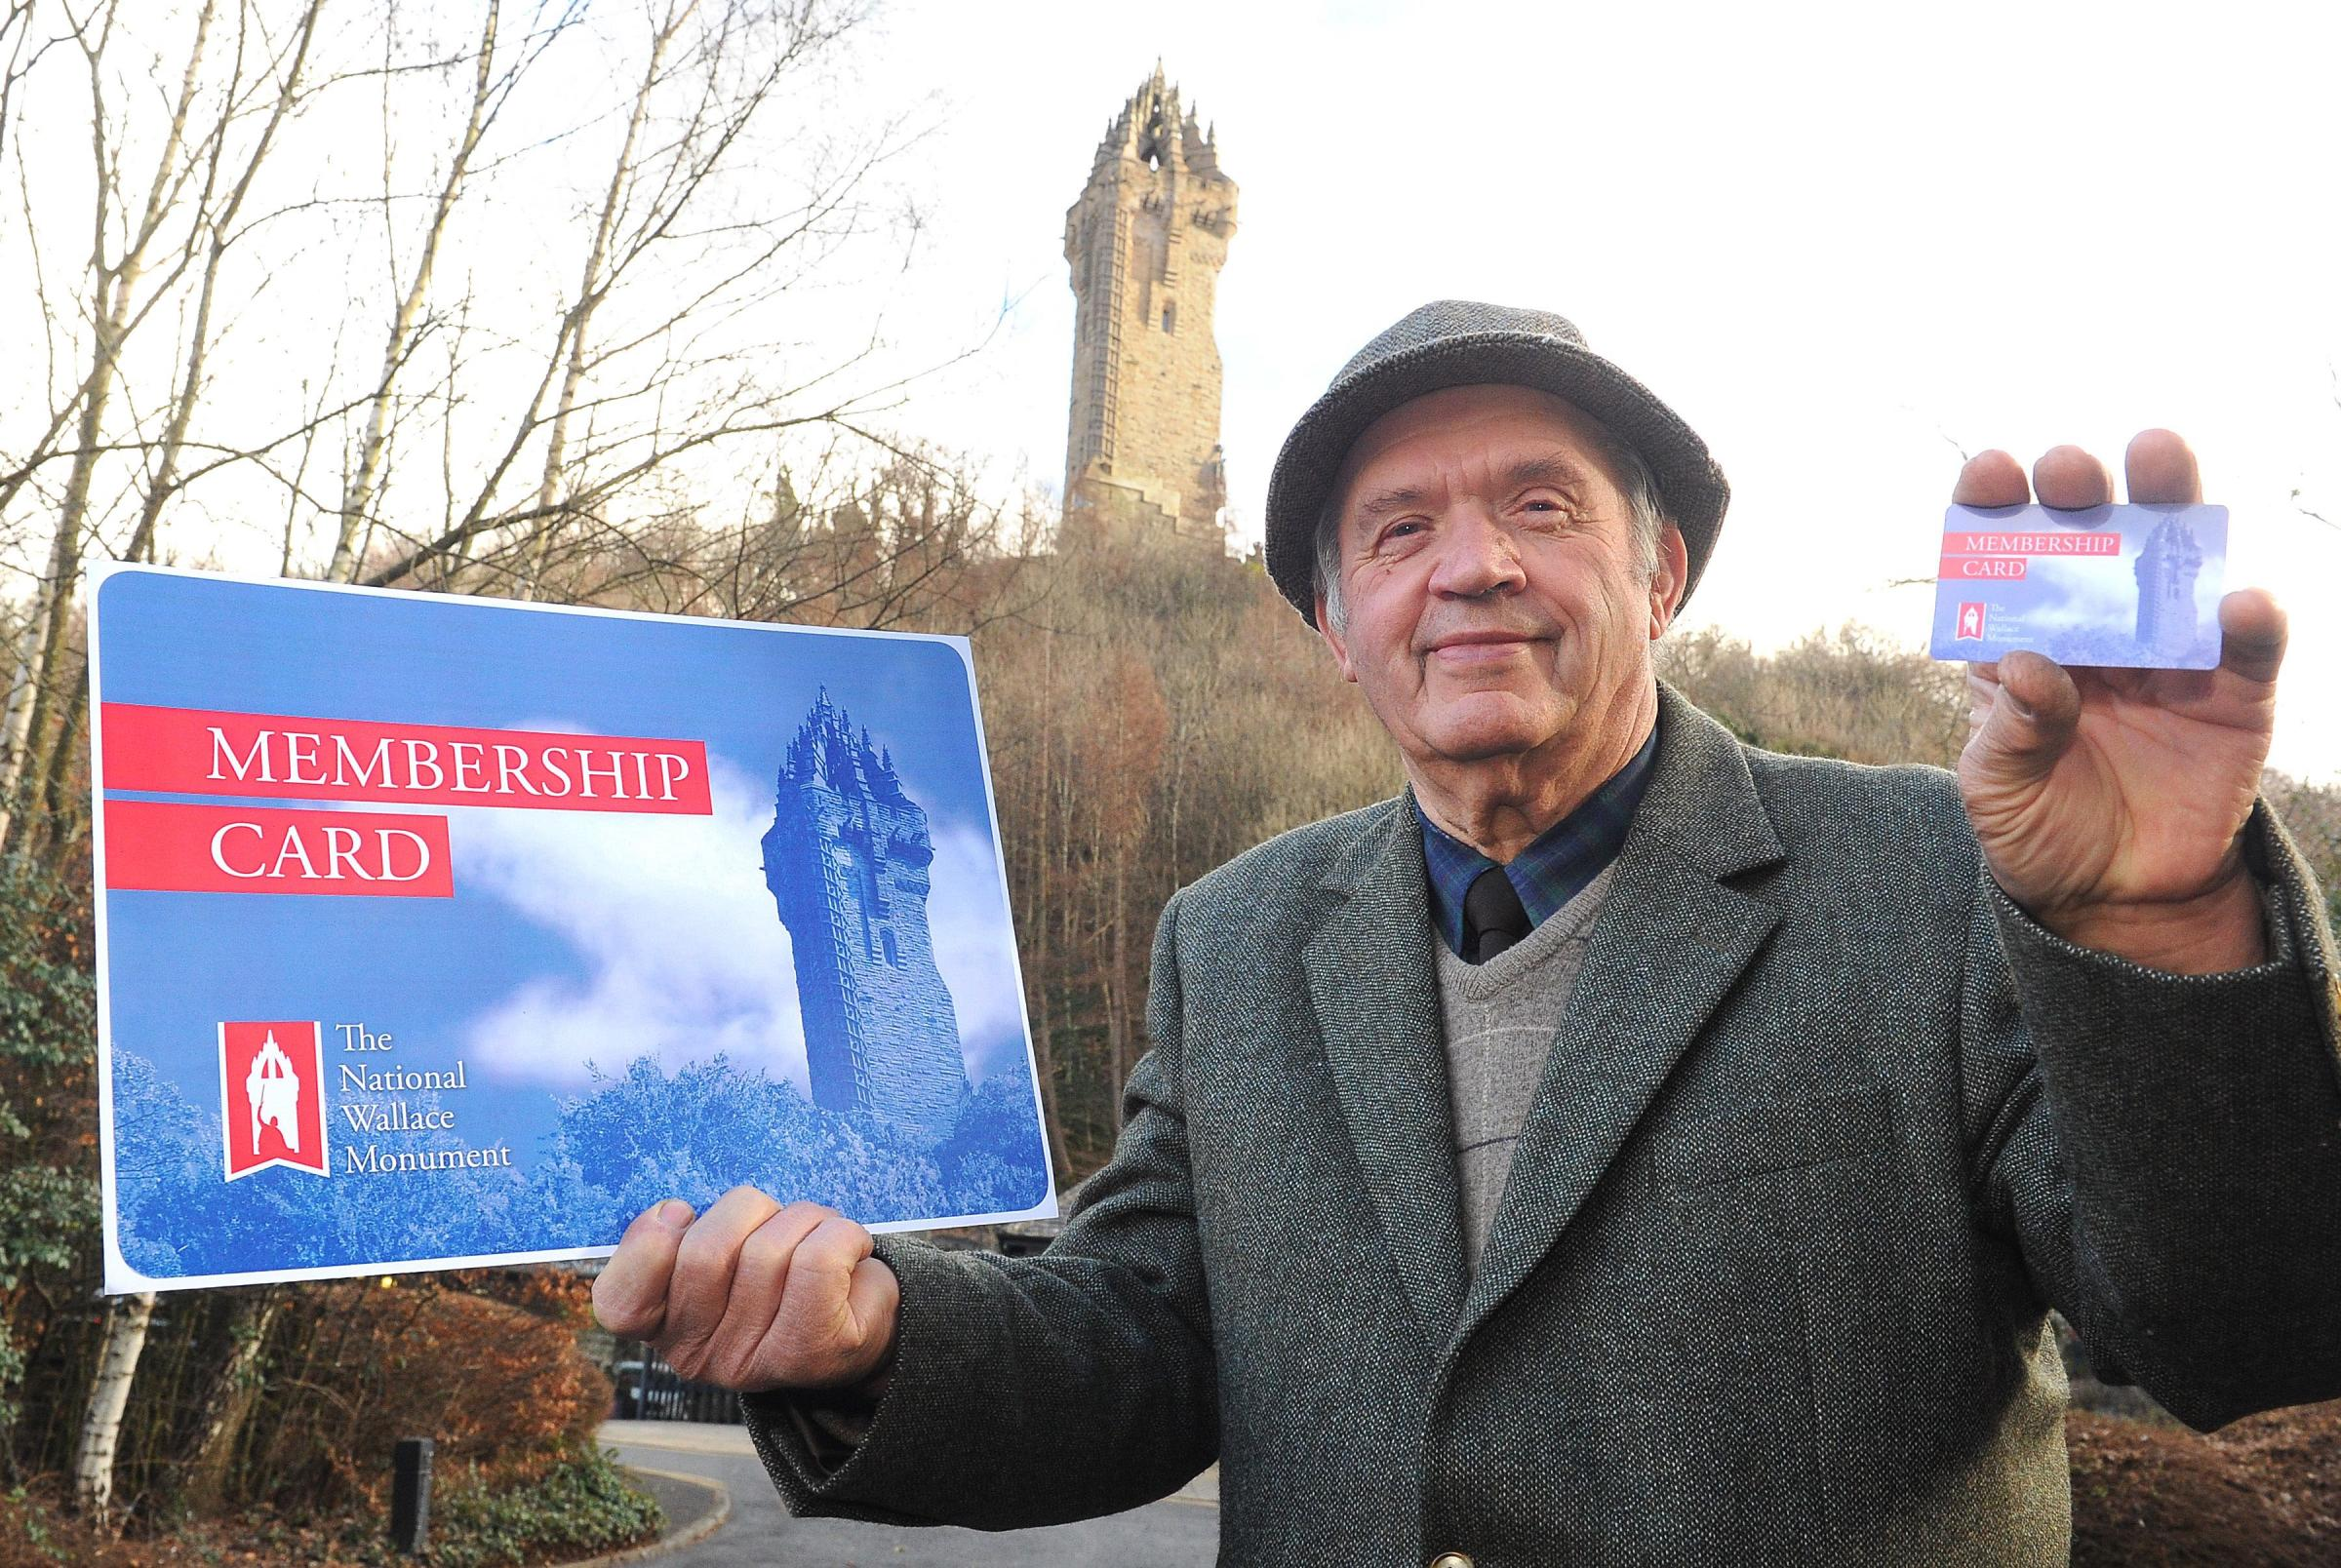 William Wallace signs up for monument membership